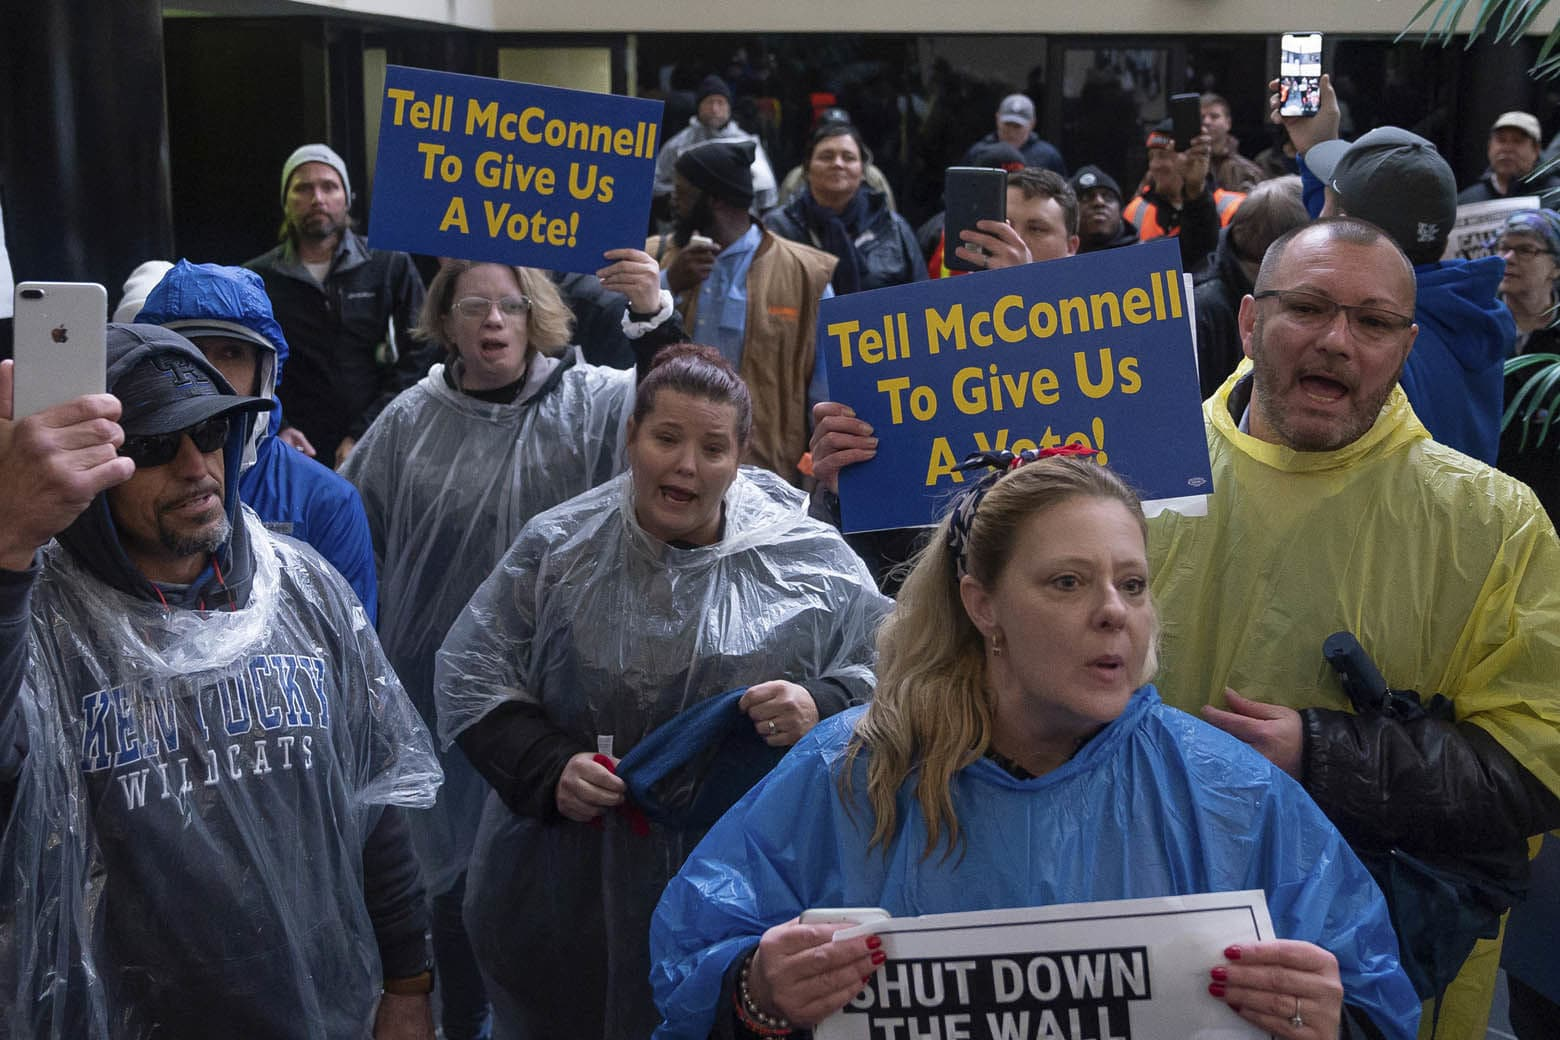 Furloughed government workers protest the government shutdown at the door of U.S. Sen. Mitch McConnell's office in Lexington, Ky., Wednesday, Jan 23, 2019. (AP Photo/Bryan Woolston)